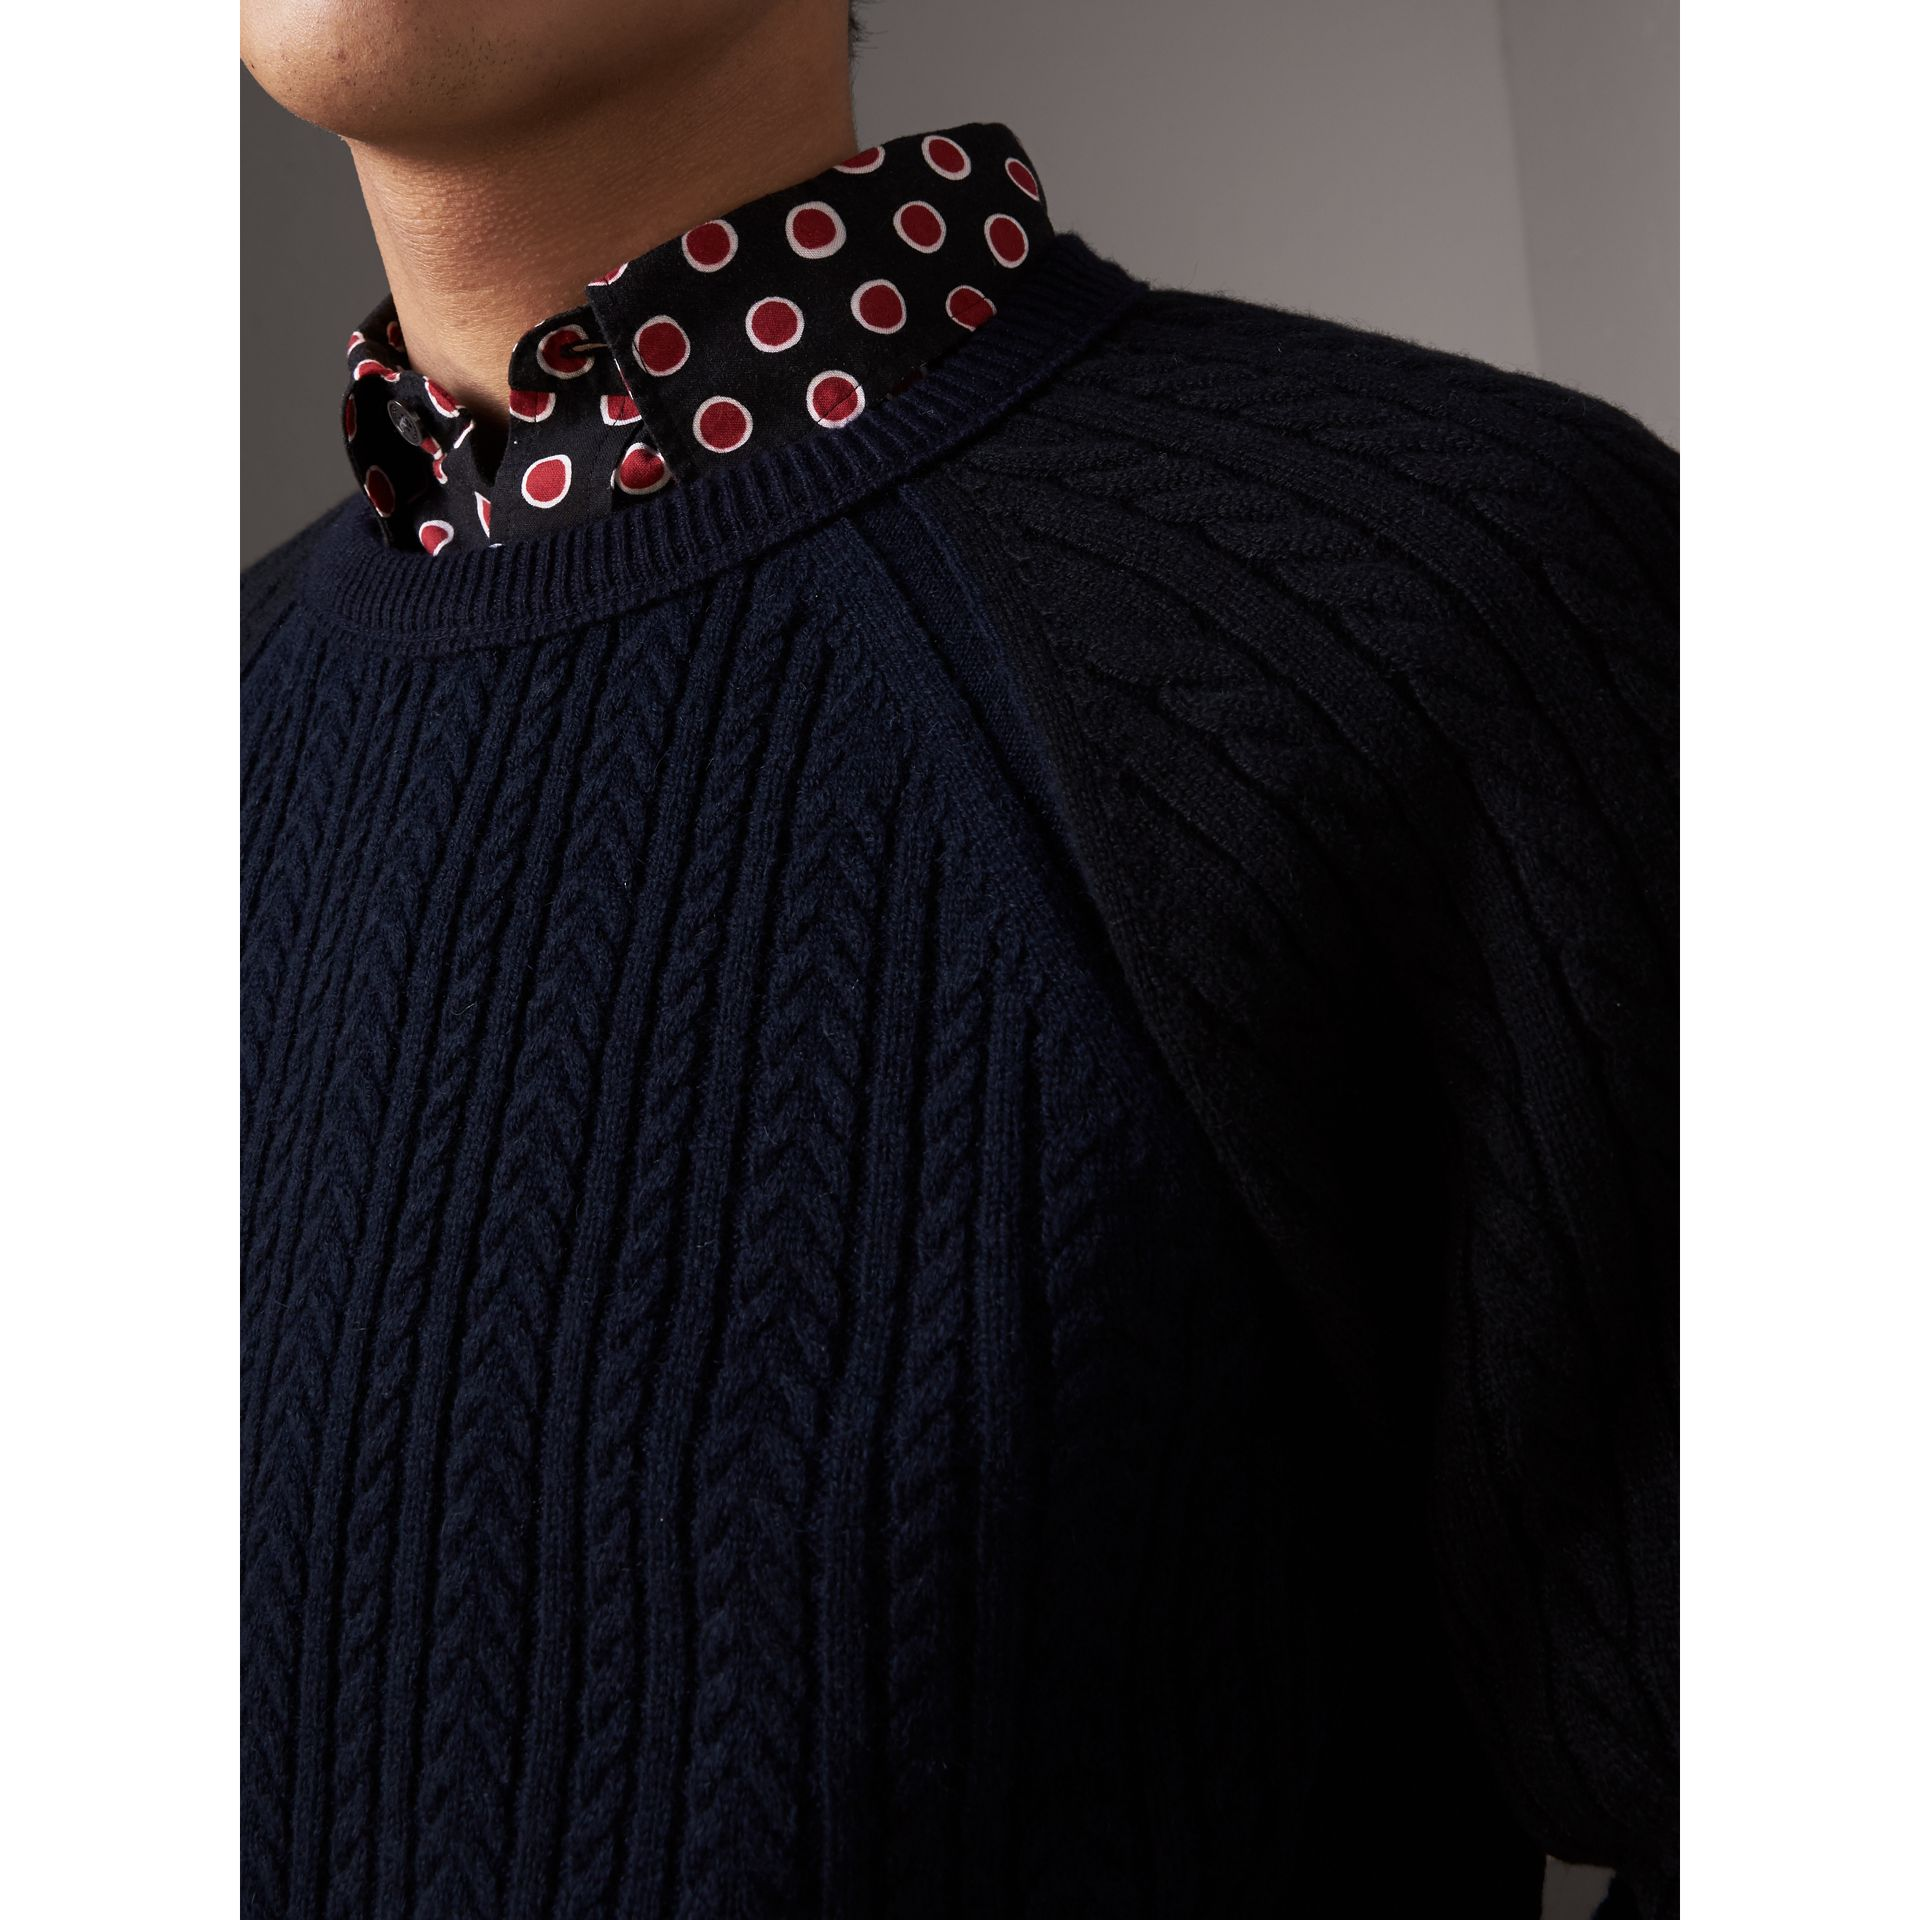 Two-tone Cable Knit Cashmere Sweater in Navy - Men | Burberry - gallery image 2